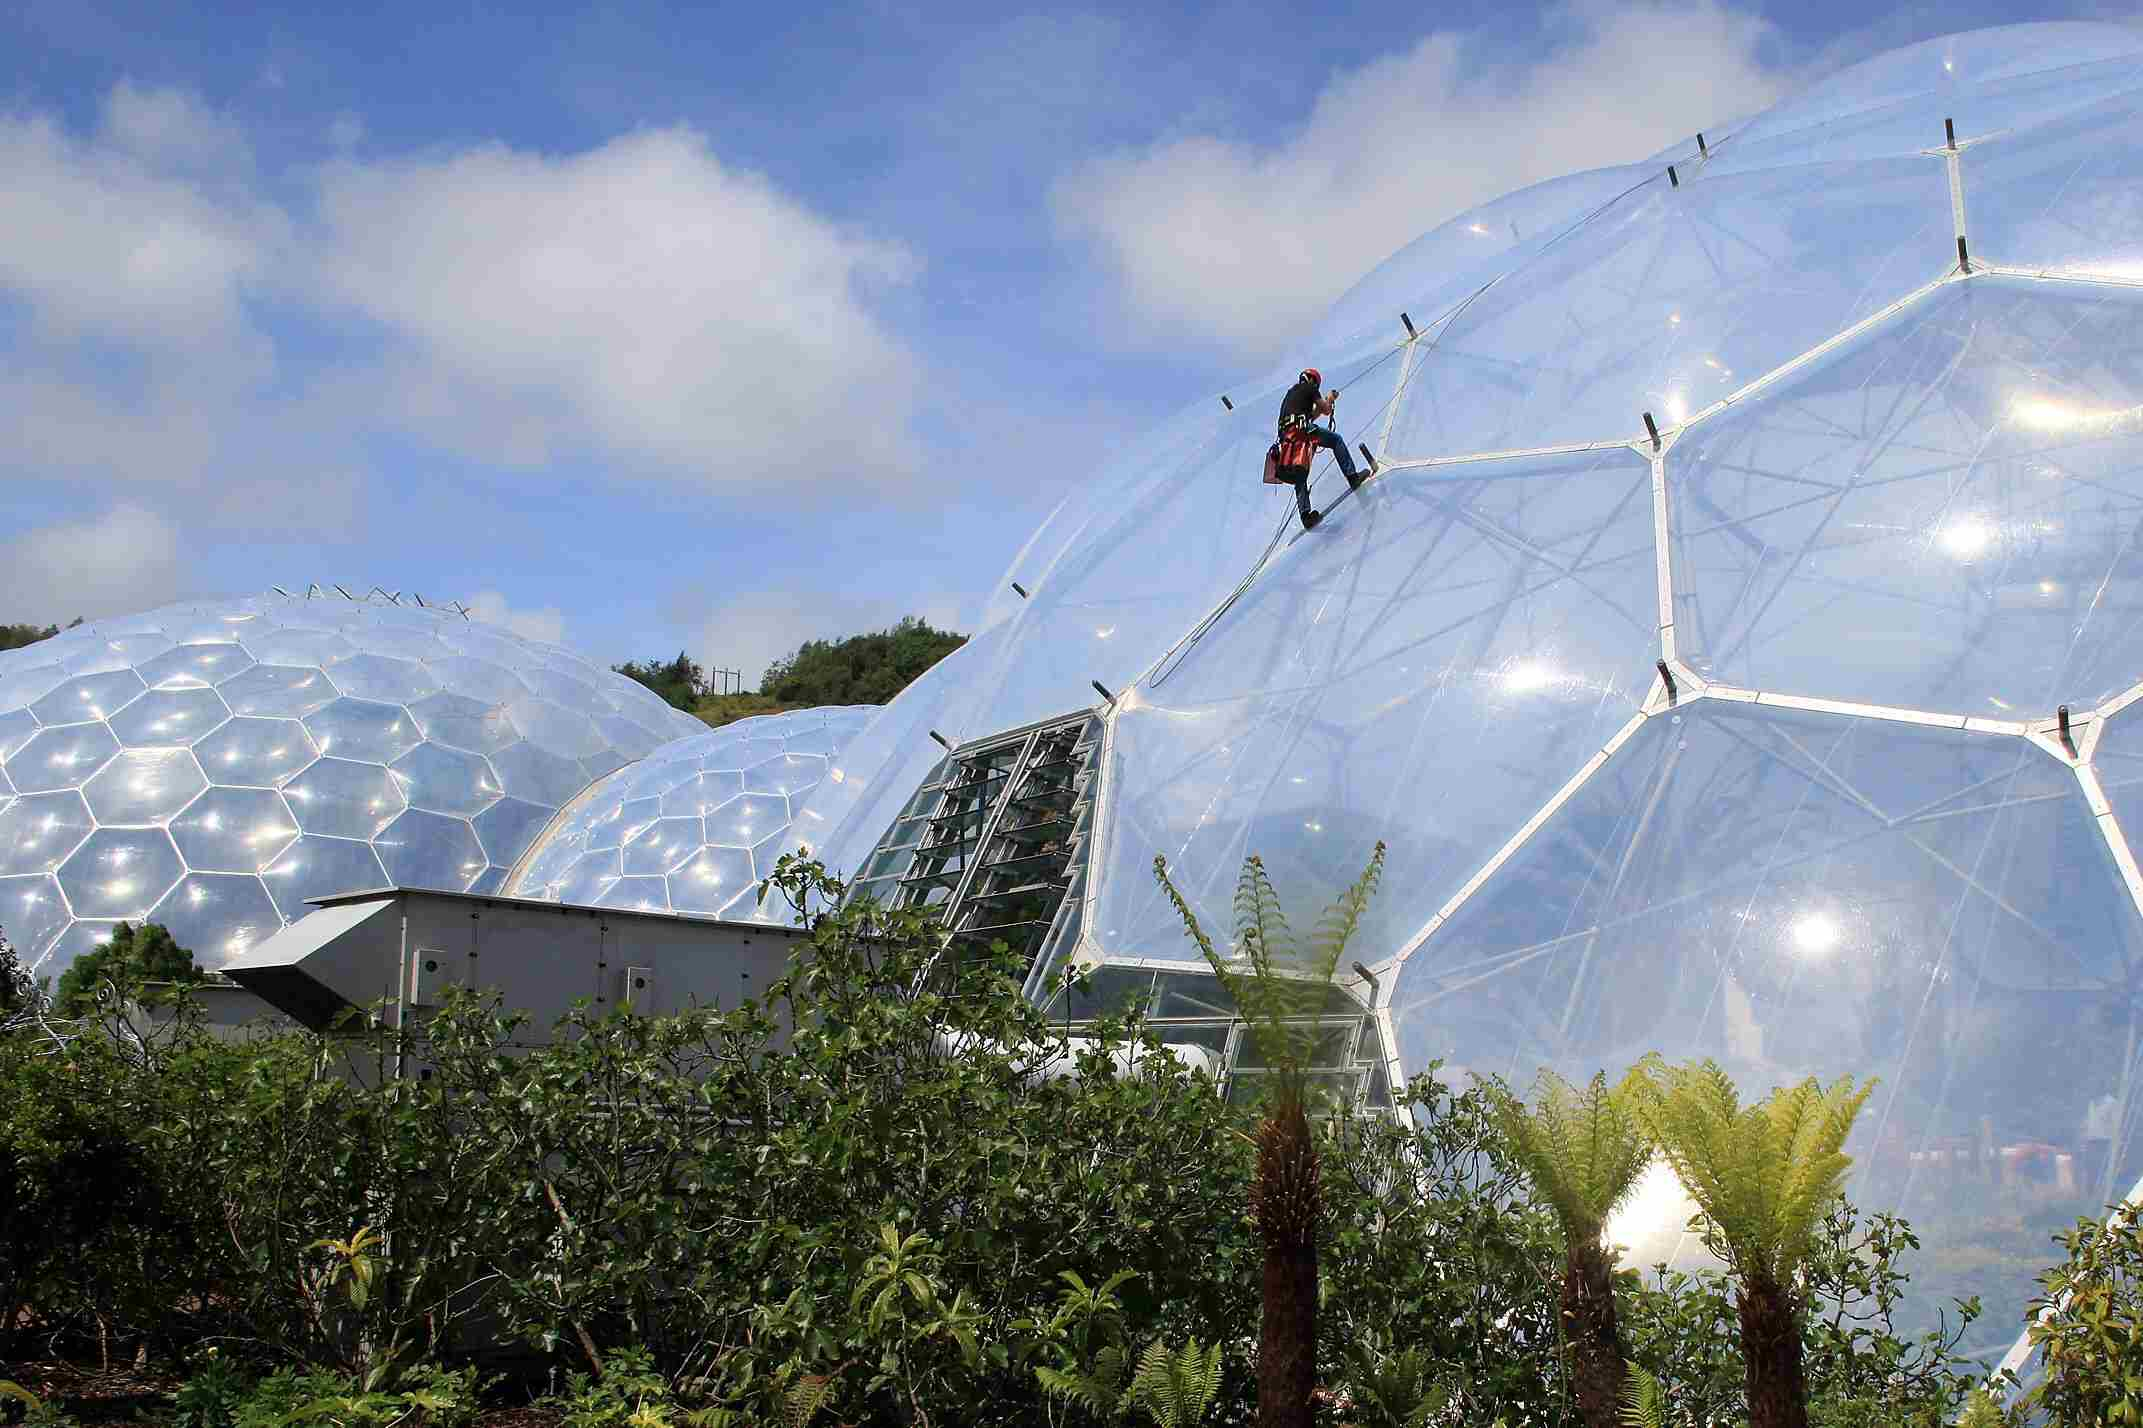 Technician on Rope Descends ETFE Bubbles of the Eden Project in Cornwall, England